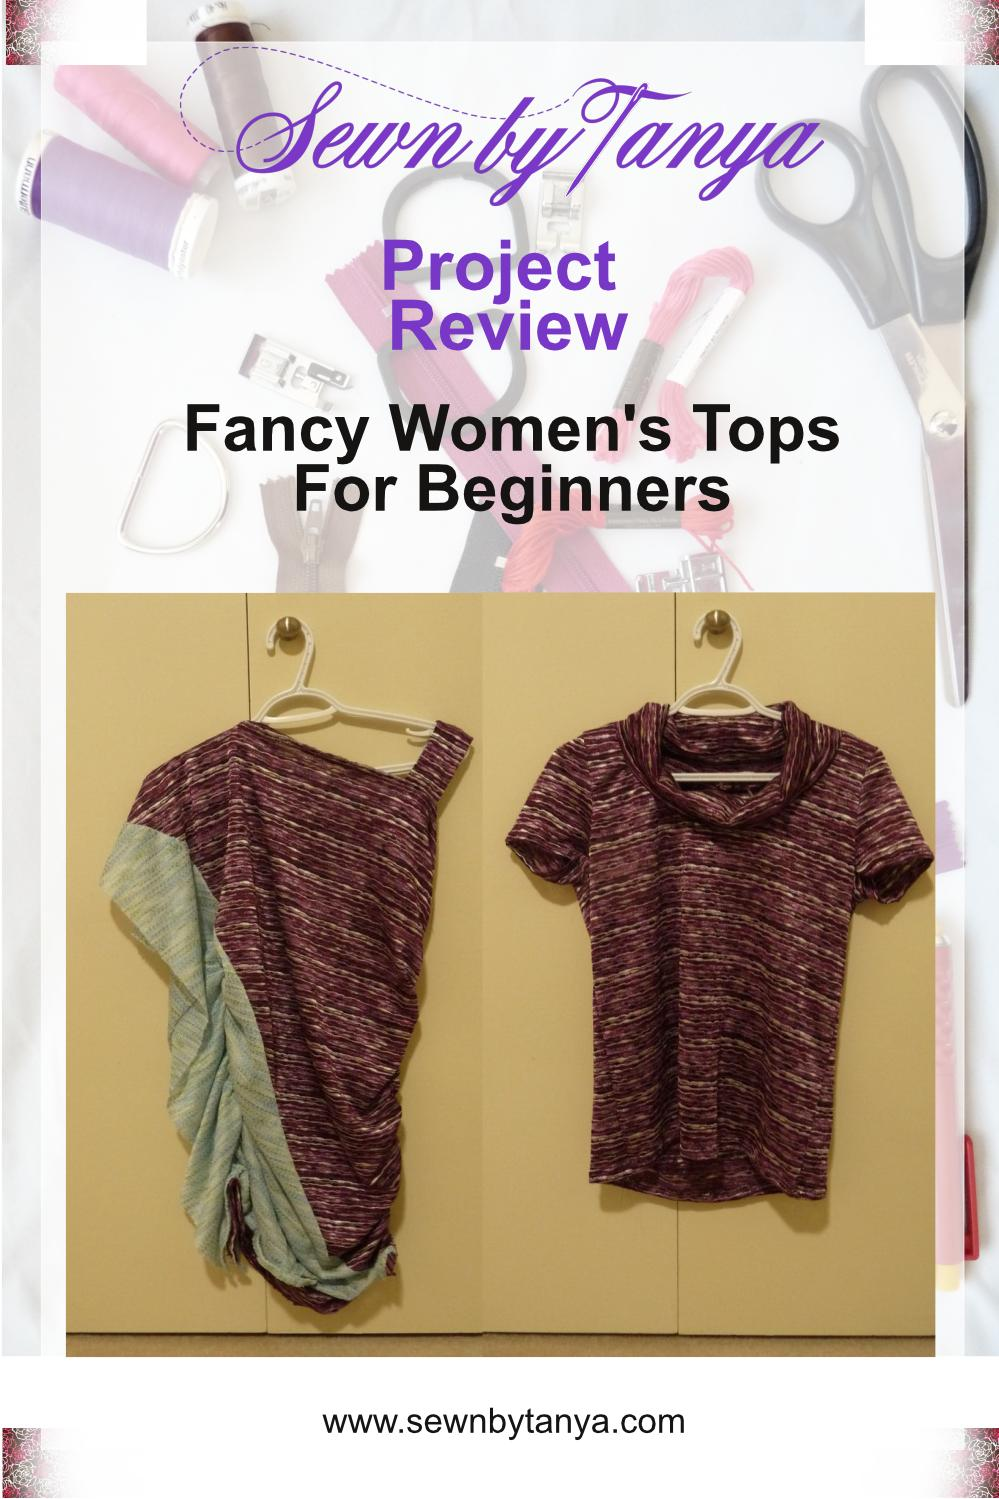 """Pinterest Image for """"Sewn By Tanya Project Review   Fancy Women's Tops For Beginners"""" with photos of purple and blue Waterfall Top (left) and Purple On-A-Roll T-shirt (right) on a cream background"""